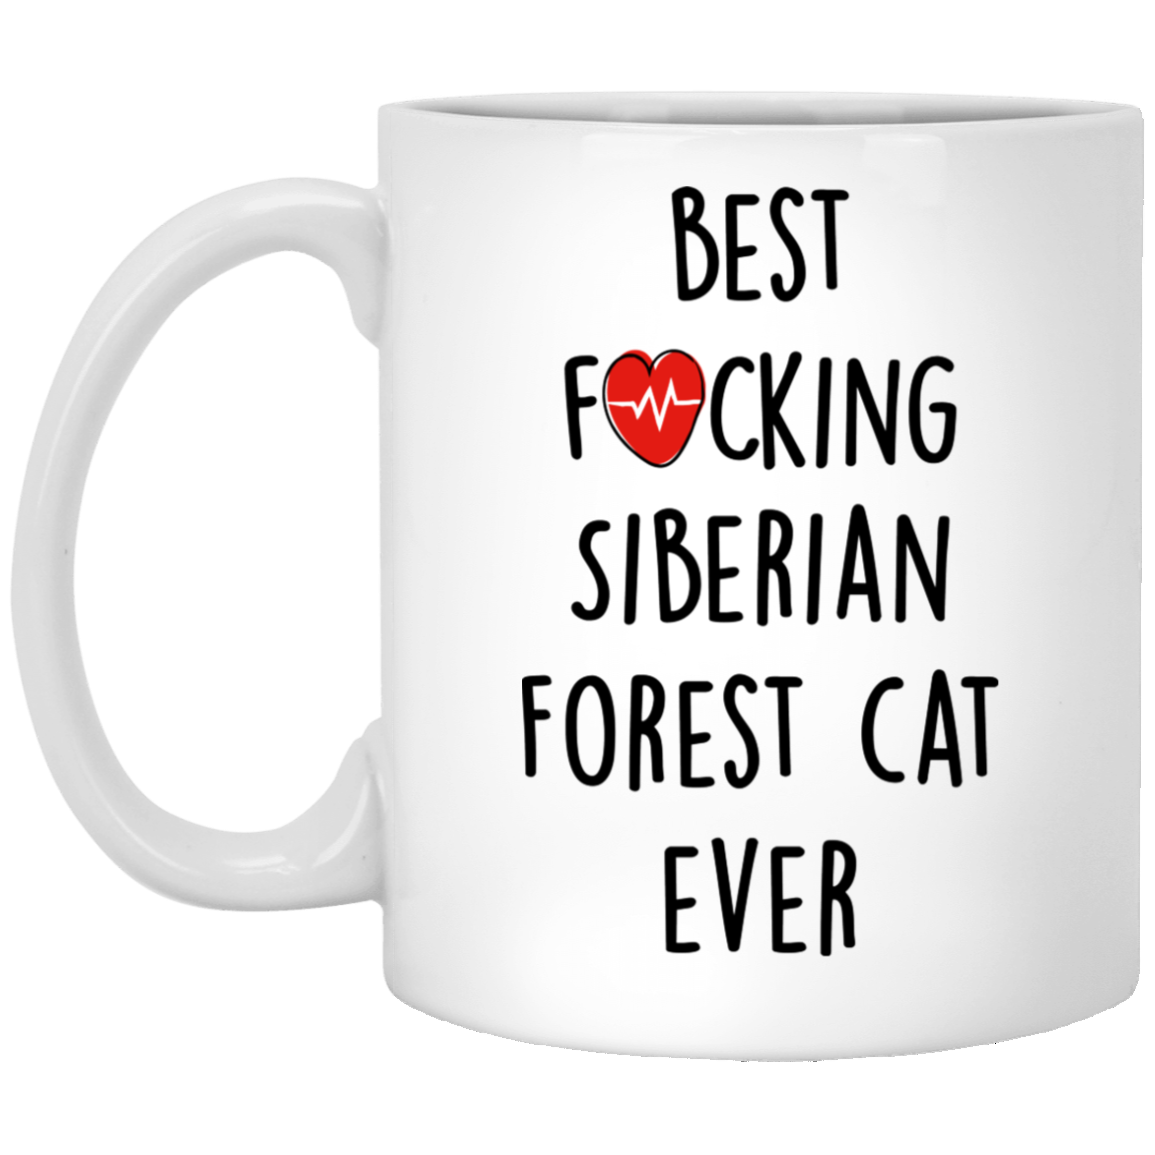 Funny-Fuking-Siberian-Forest-cat-ever Funny Quotes Coffee Mug 99promocode